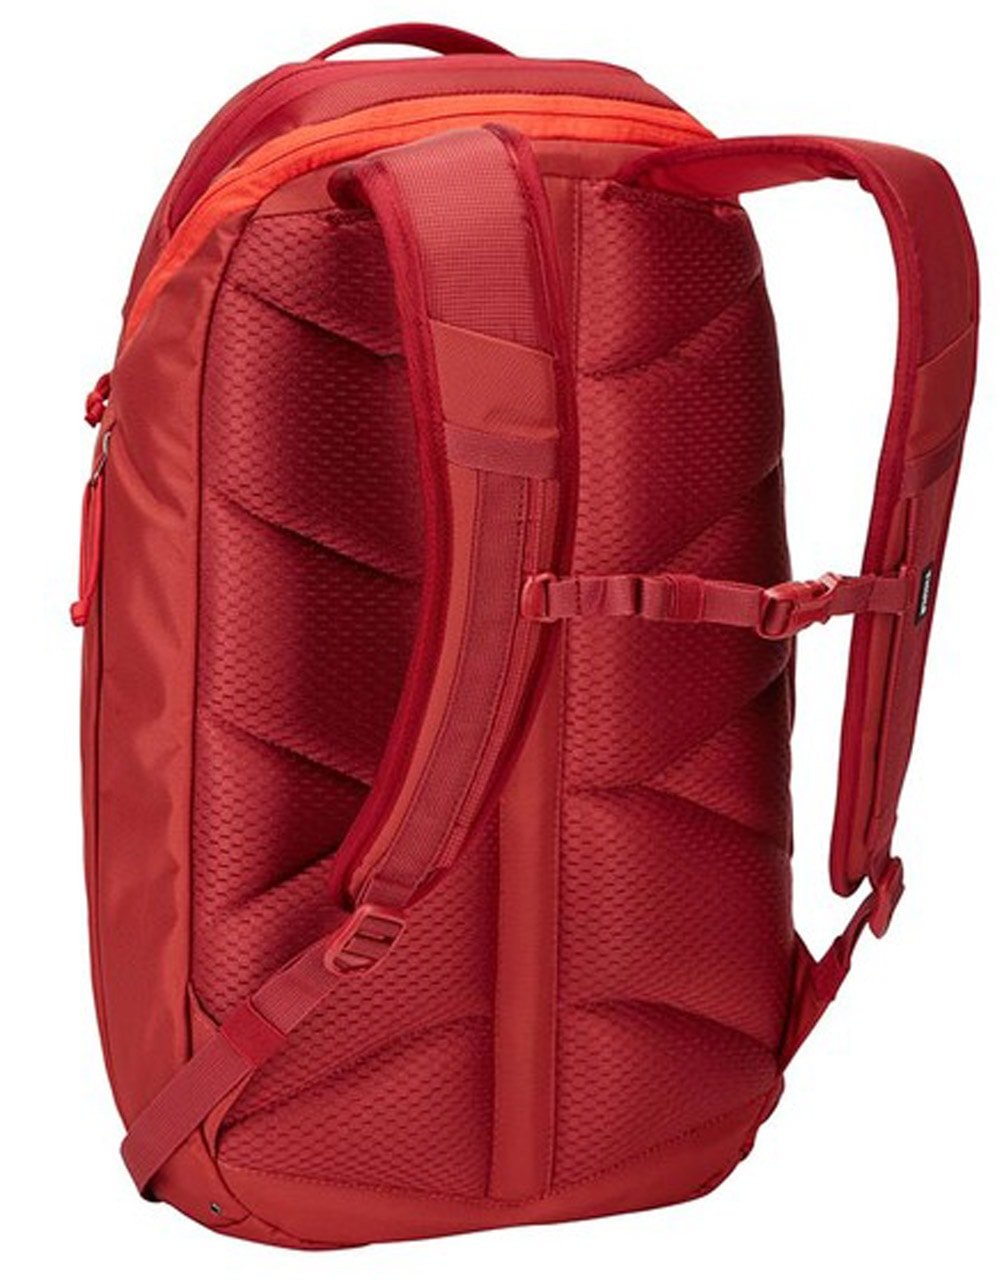 Рюкзак городской Thule EnRoute Backpack 23L 2018 - Red Feather, бордо